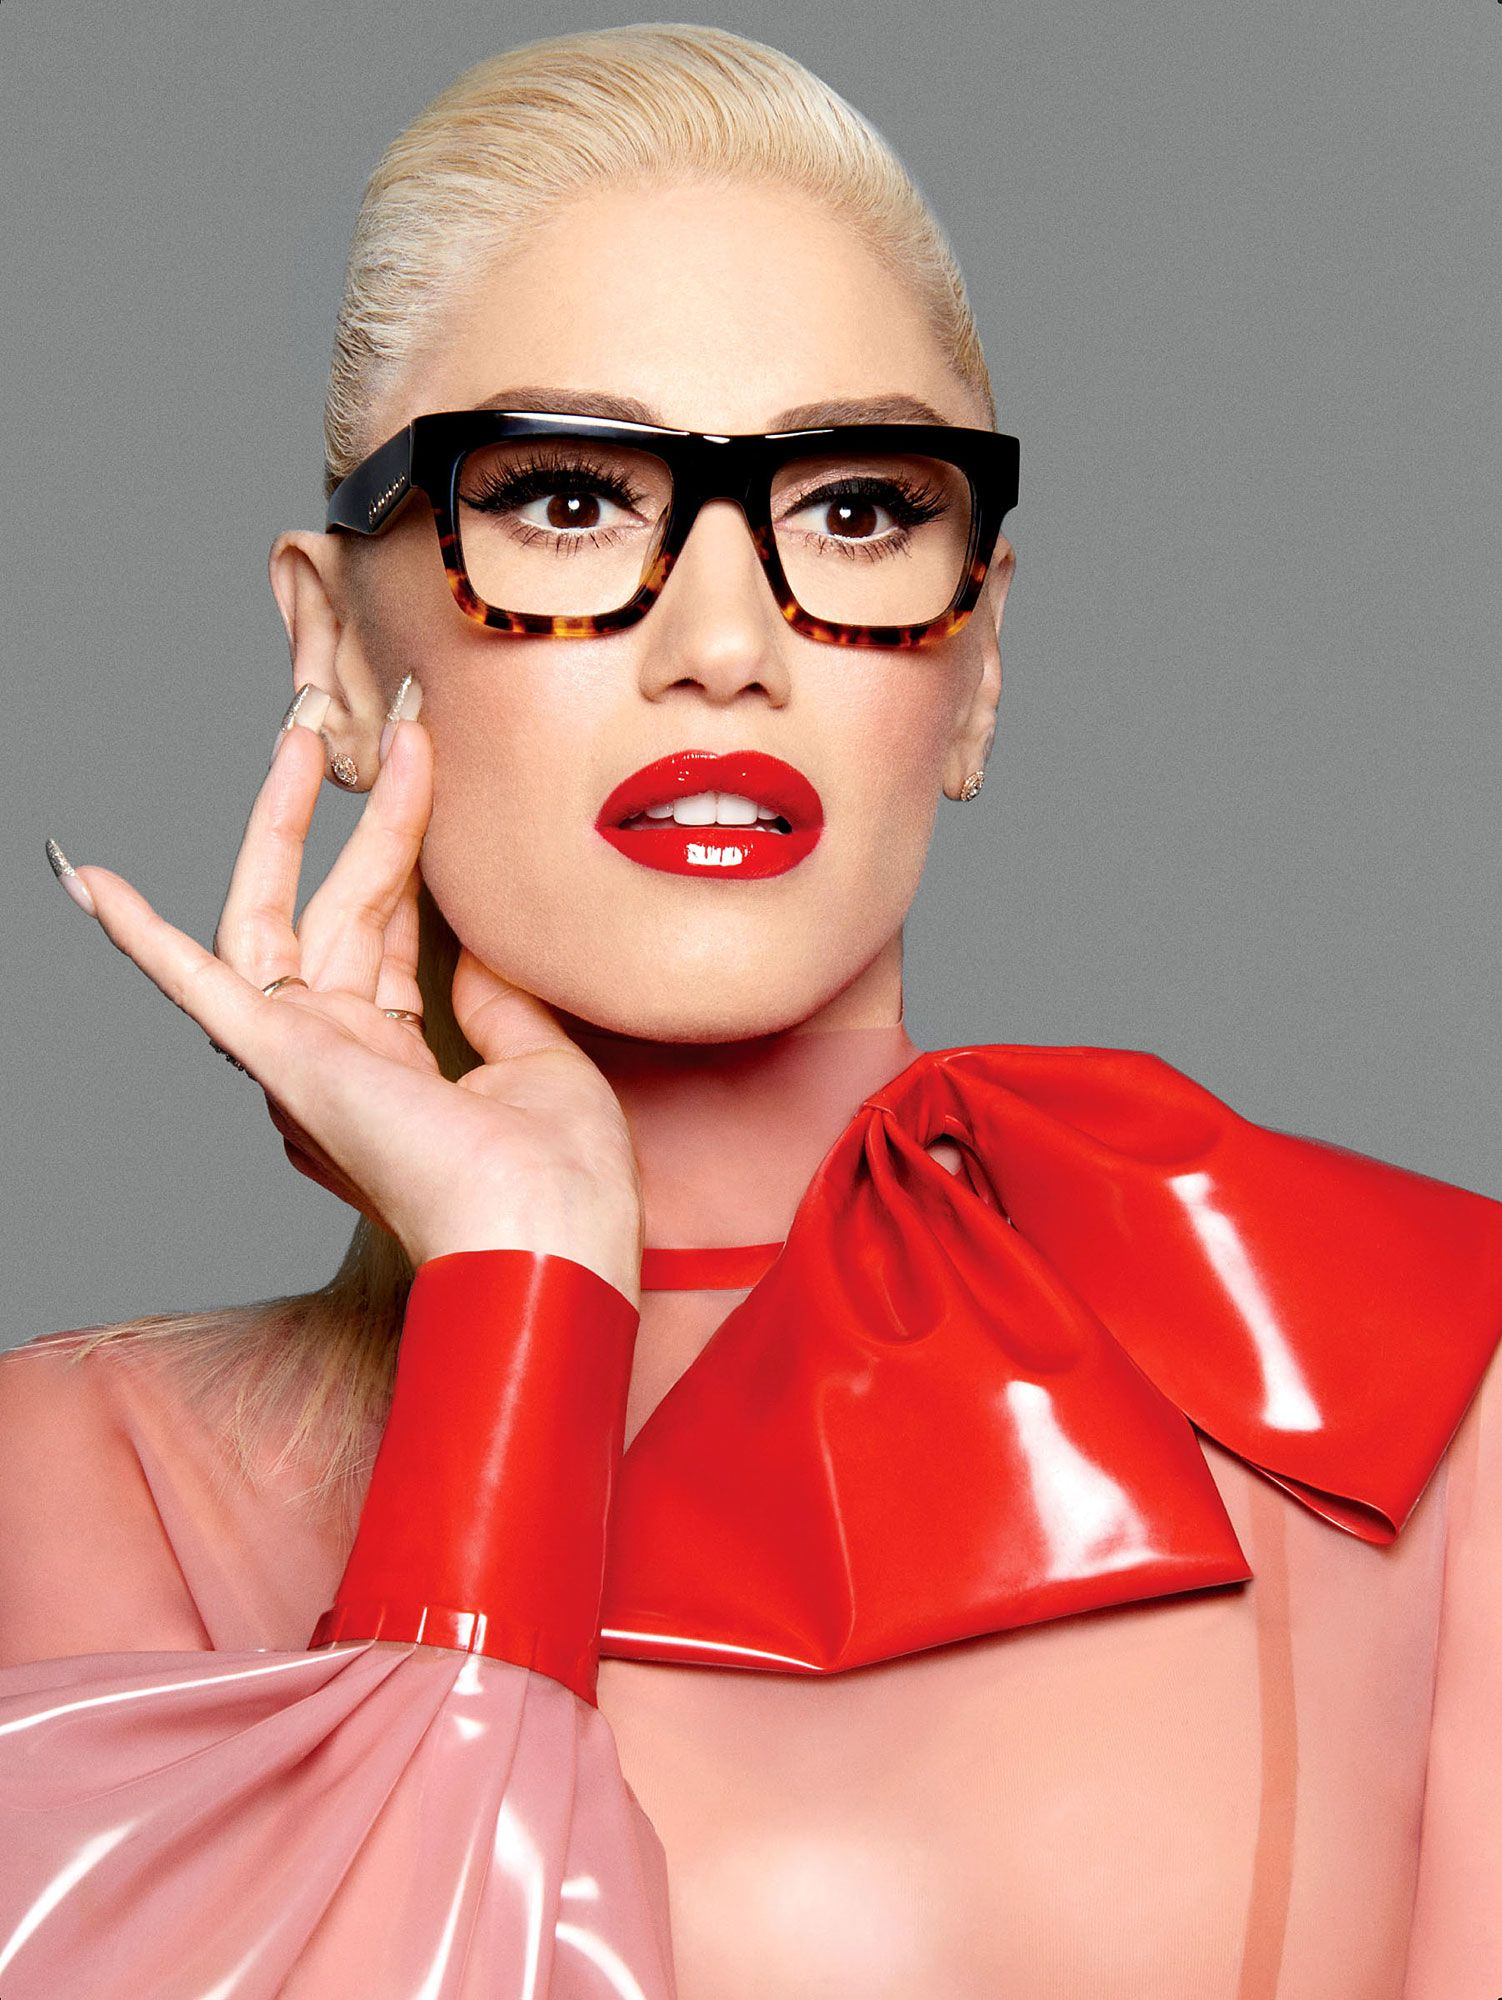 Gwen Stefani\'s Says Her Eyeglasses Will Make You Look \